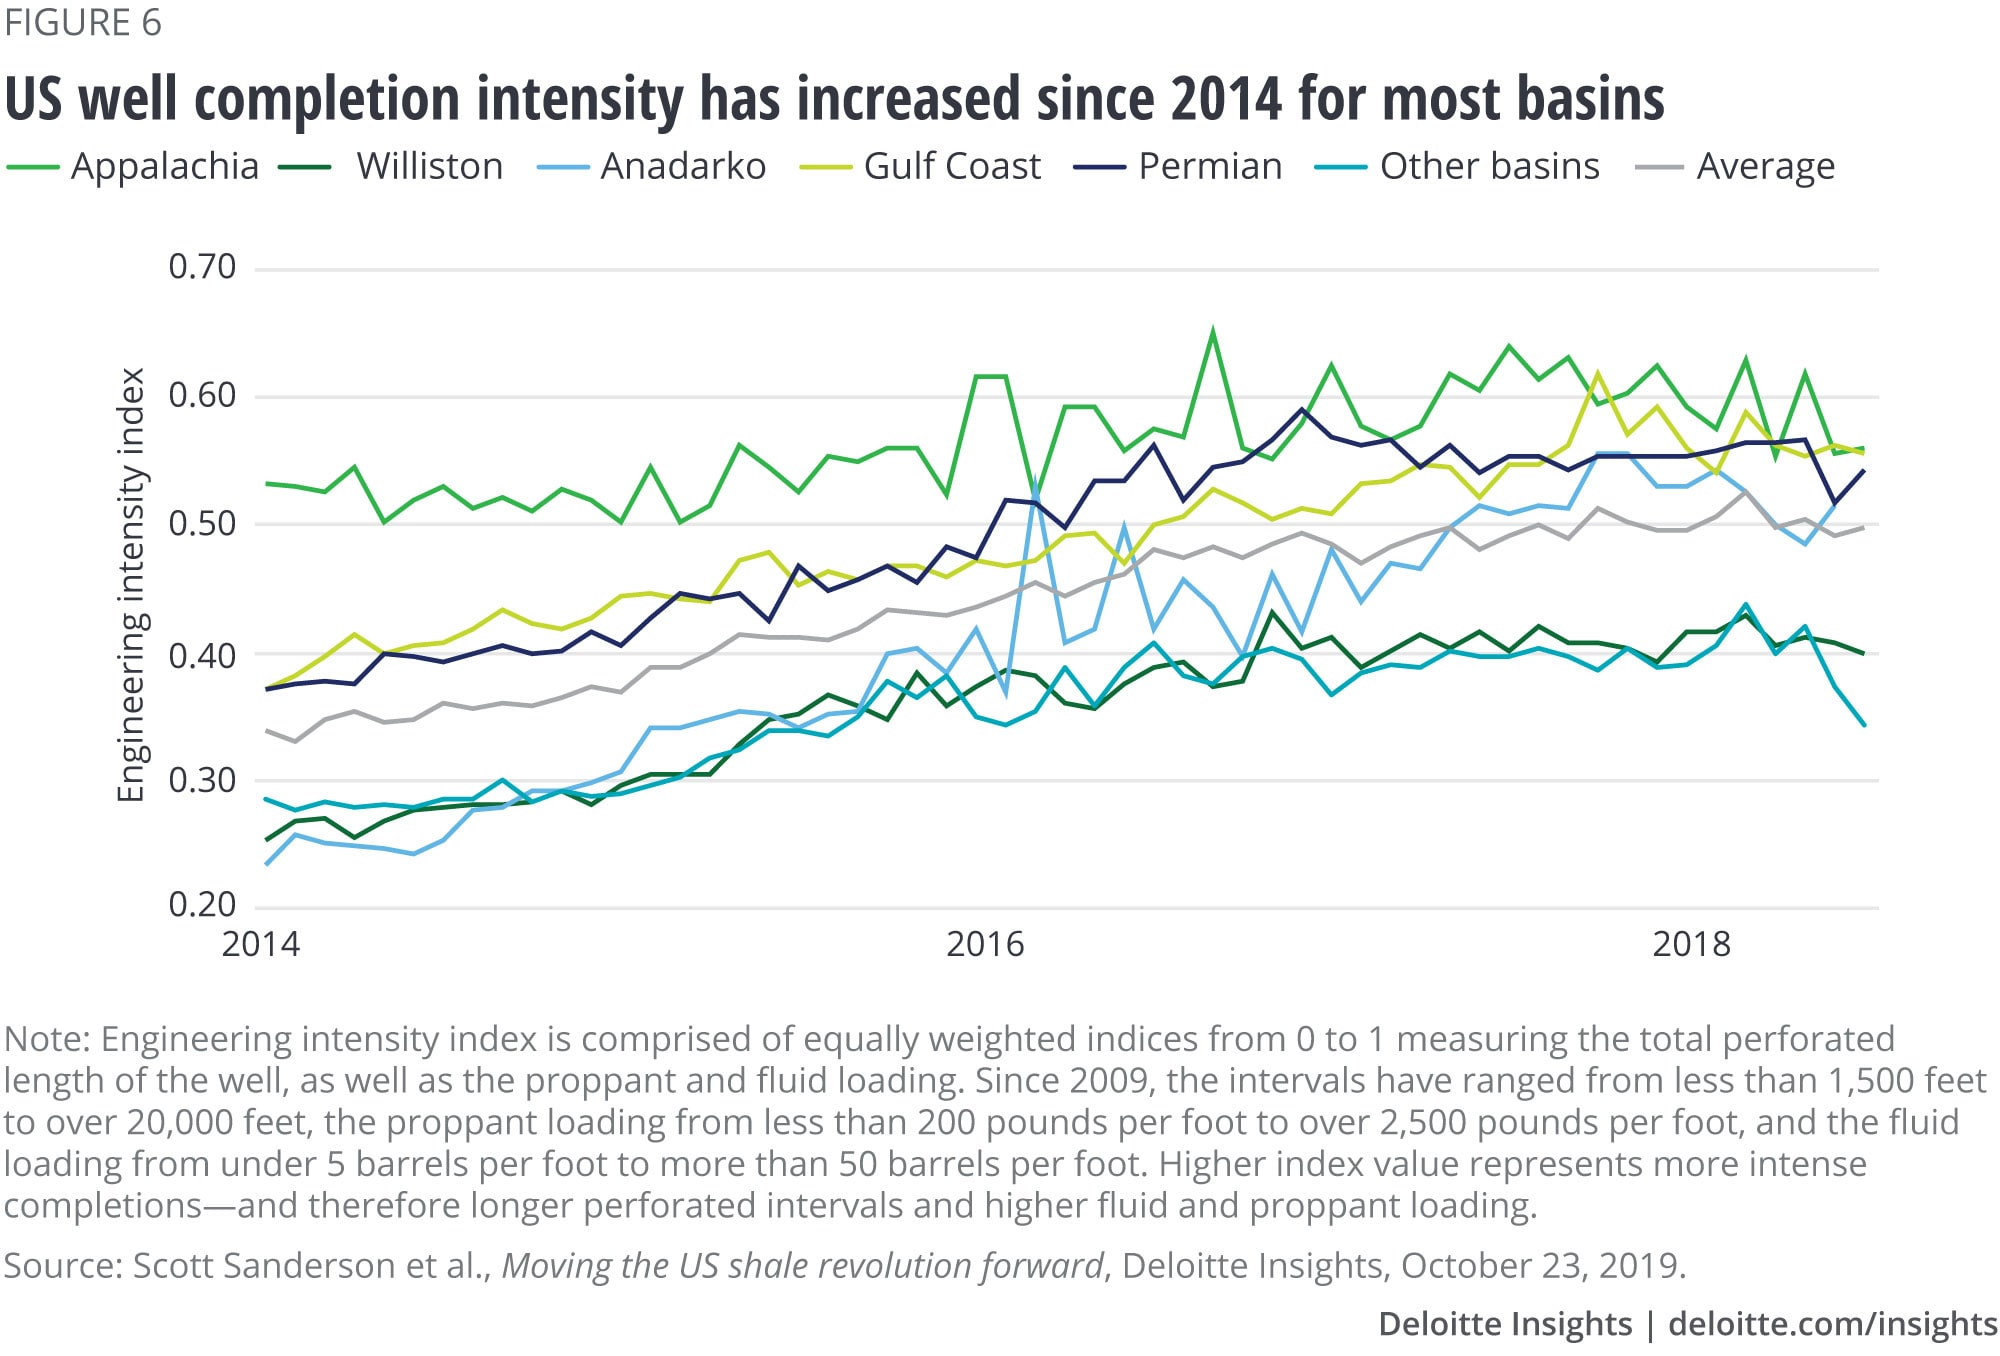 US well completions intensity has increased since 2014 for most basins